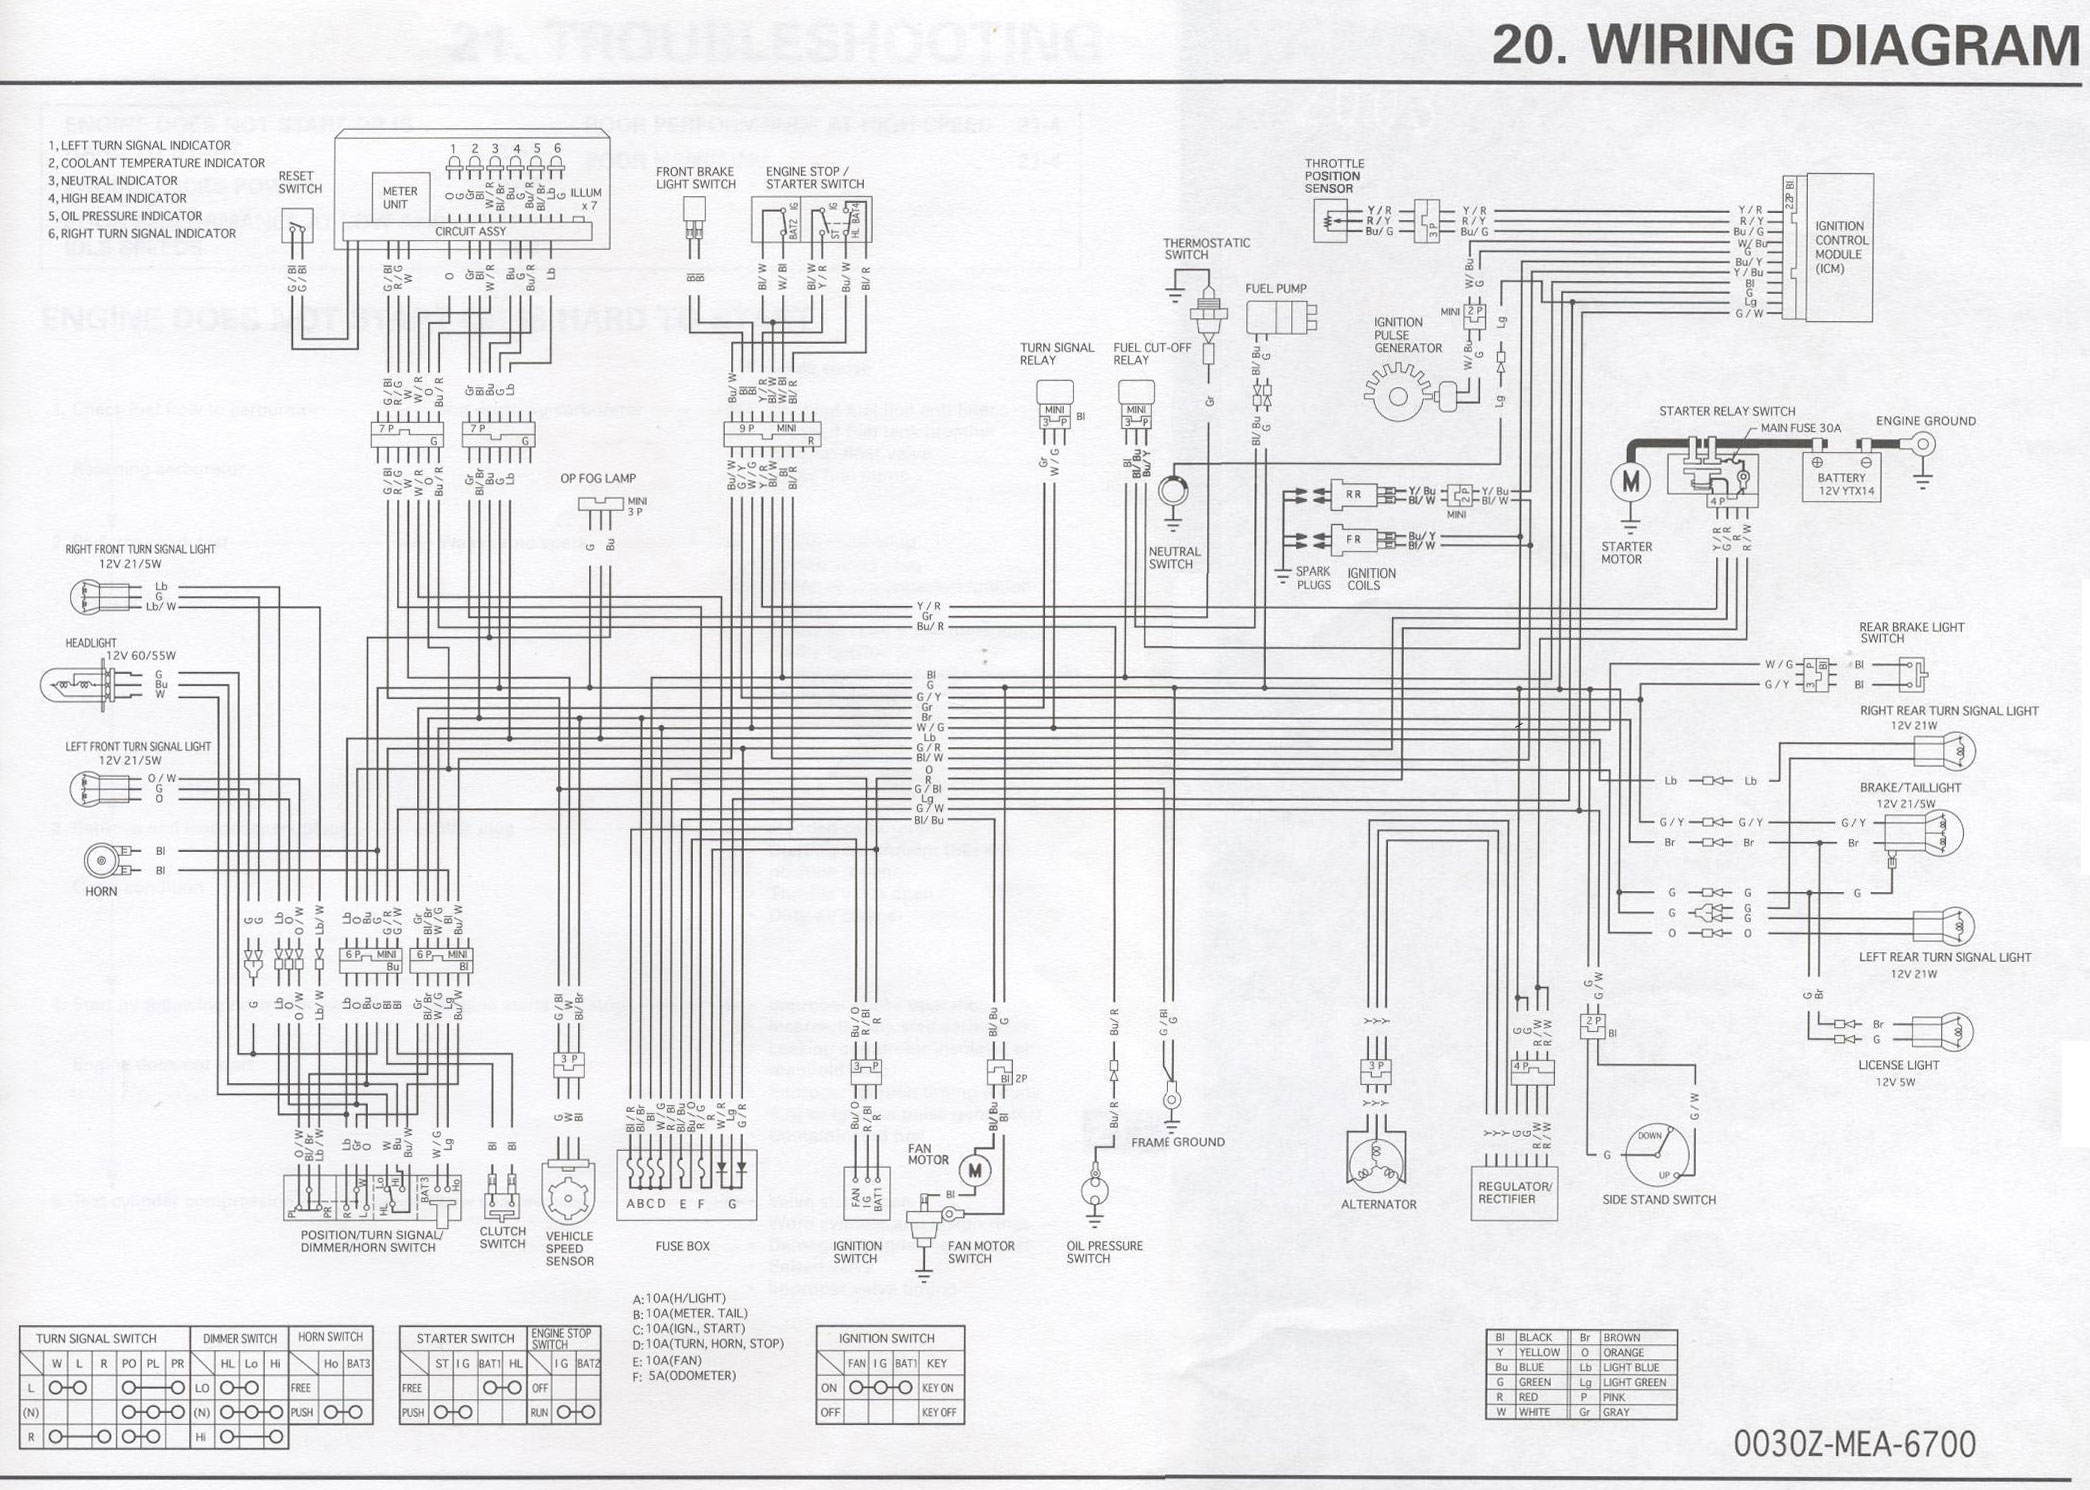 wiring diagram for honda recon atv motorcycle wire schematics « bareass choppers motorcycle ... wiring diagram for honda vtx 1300 #13